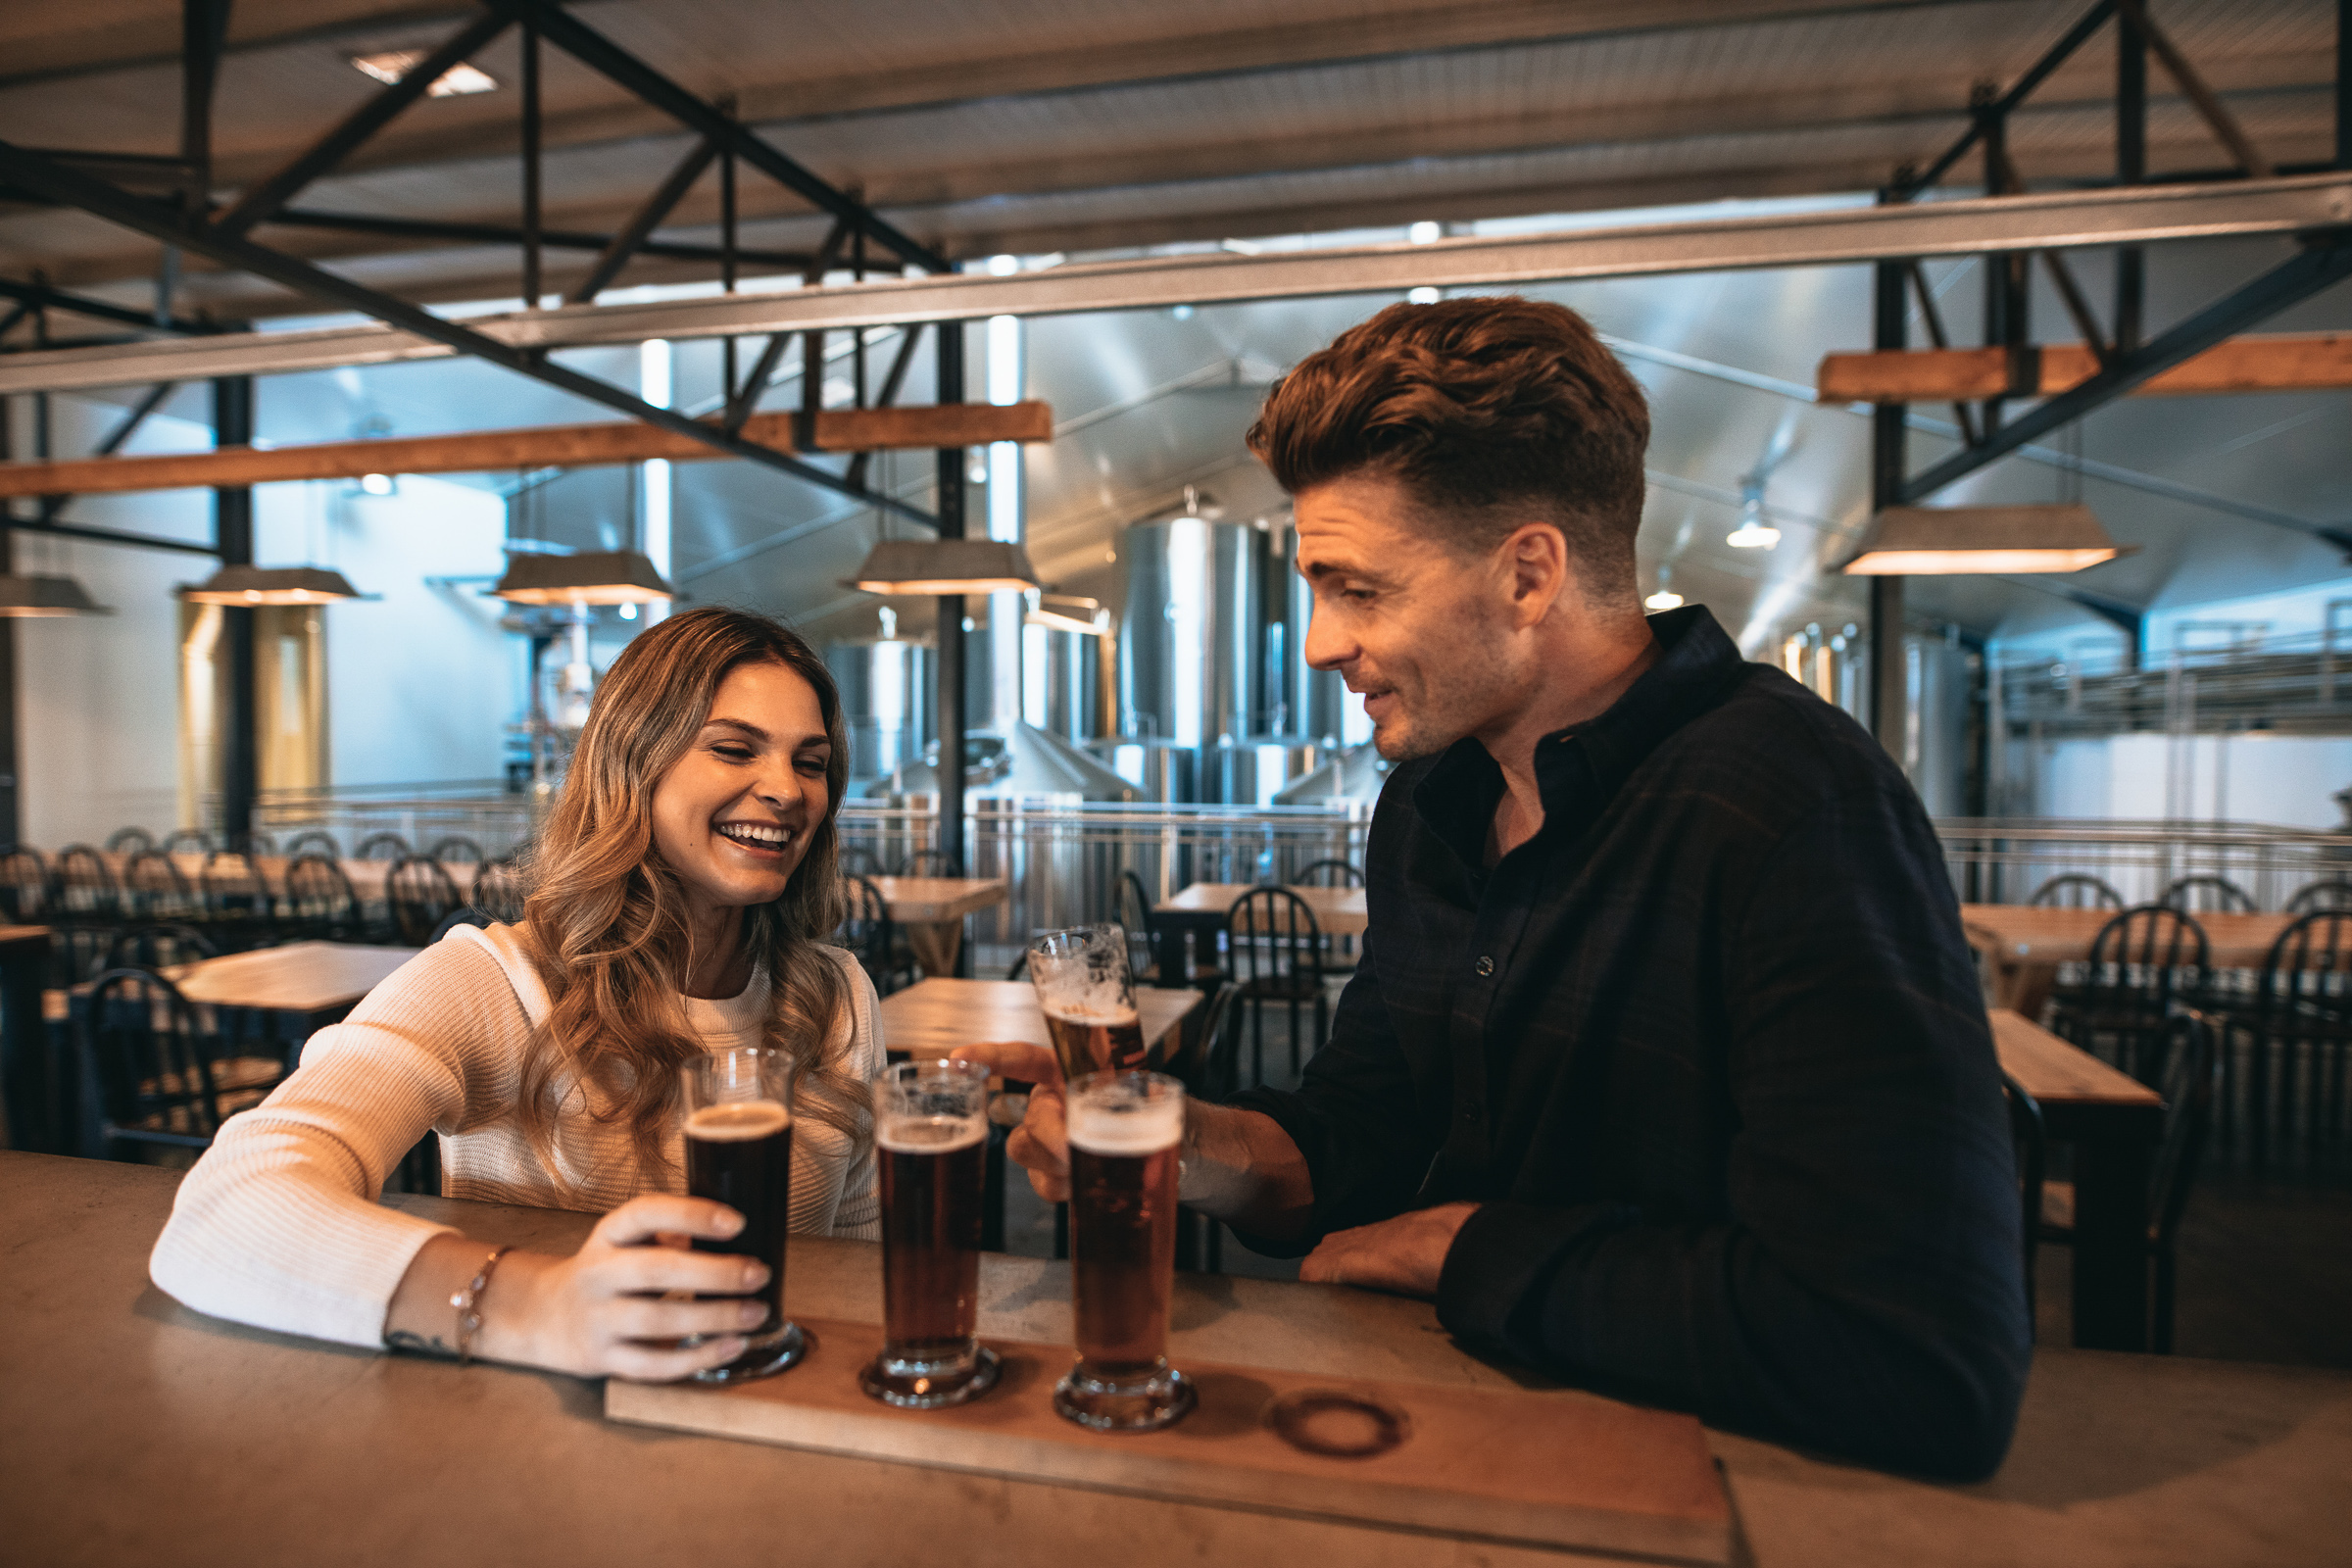 Happy young man and woman at brewery with selection of four different craft beers on table. Brewery owners tasting varieties of beers at the bar.